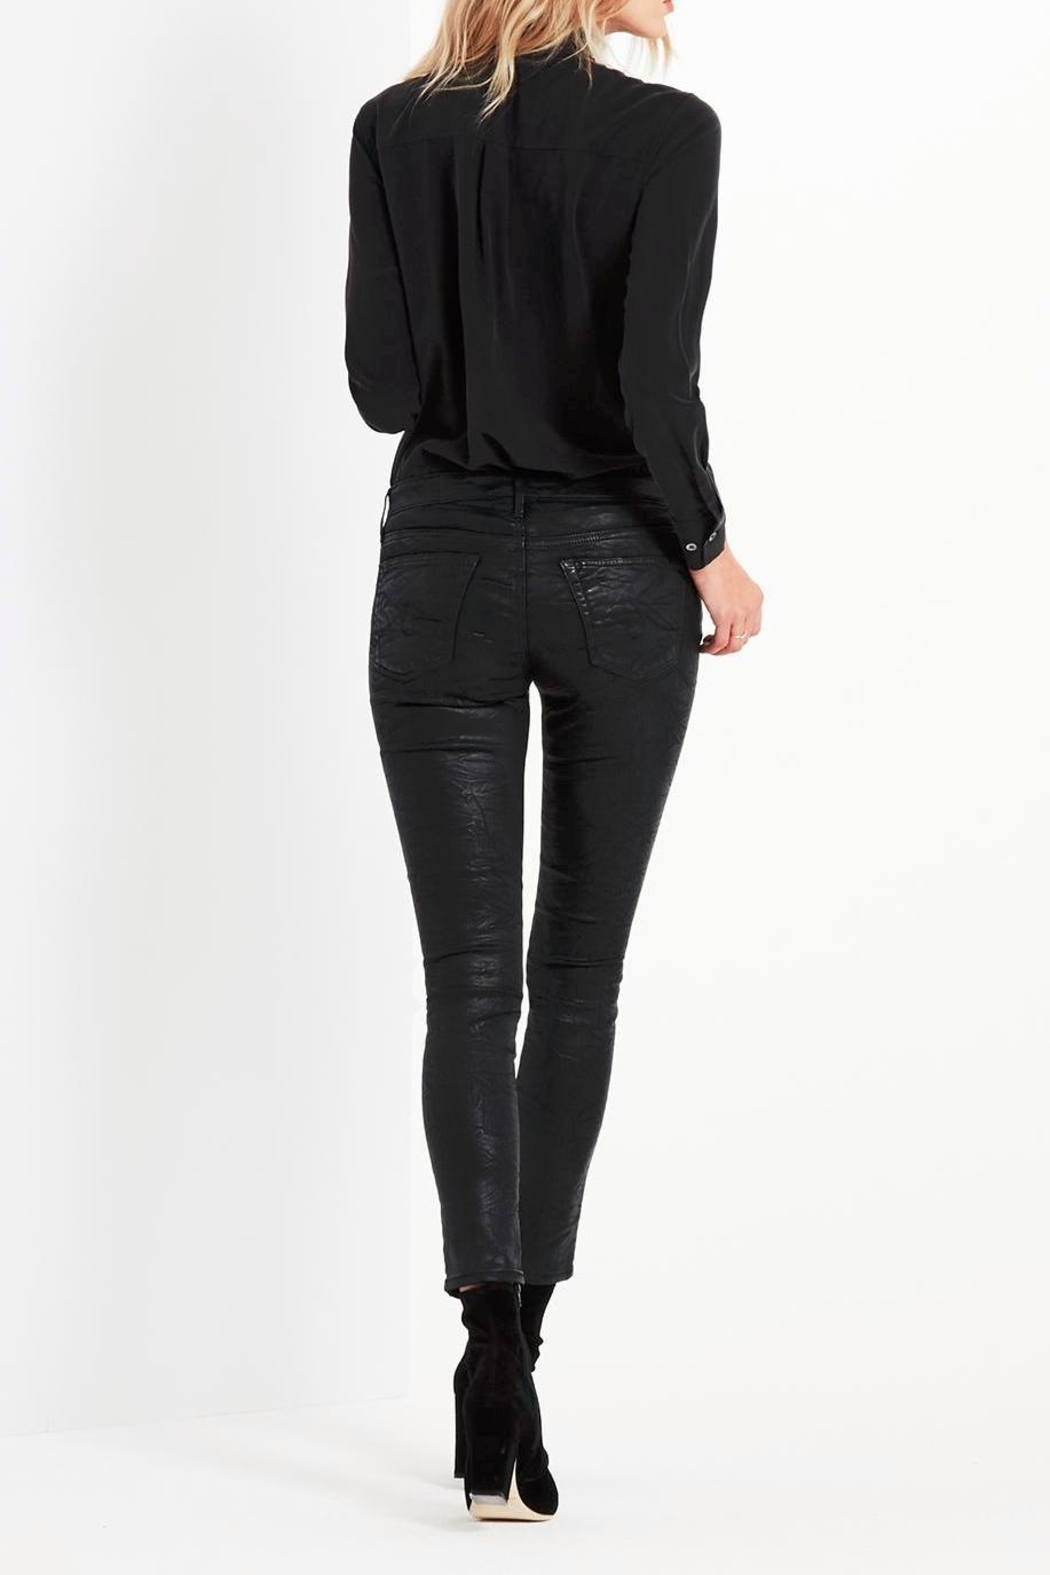 AG Adriano Goldschmied Legging-Ankle Crackle Leatherette - Side Cropped Image